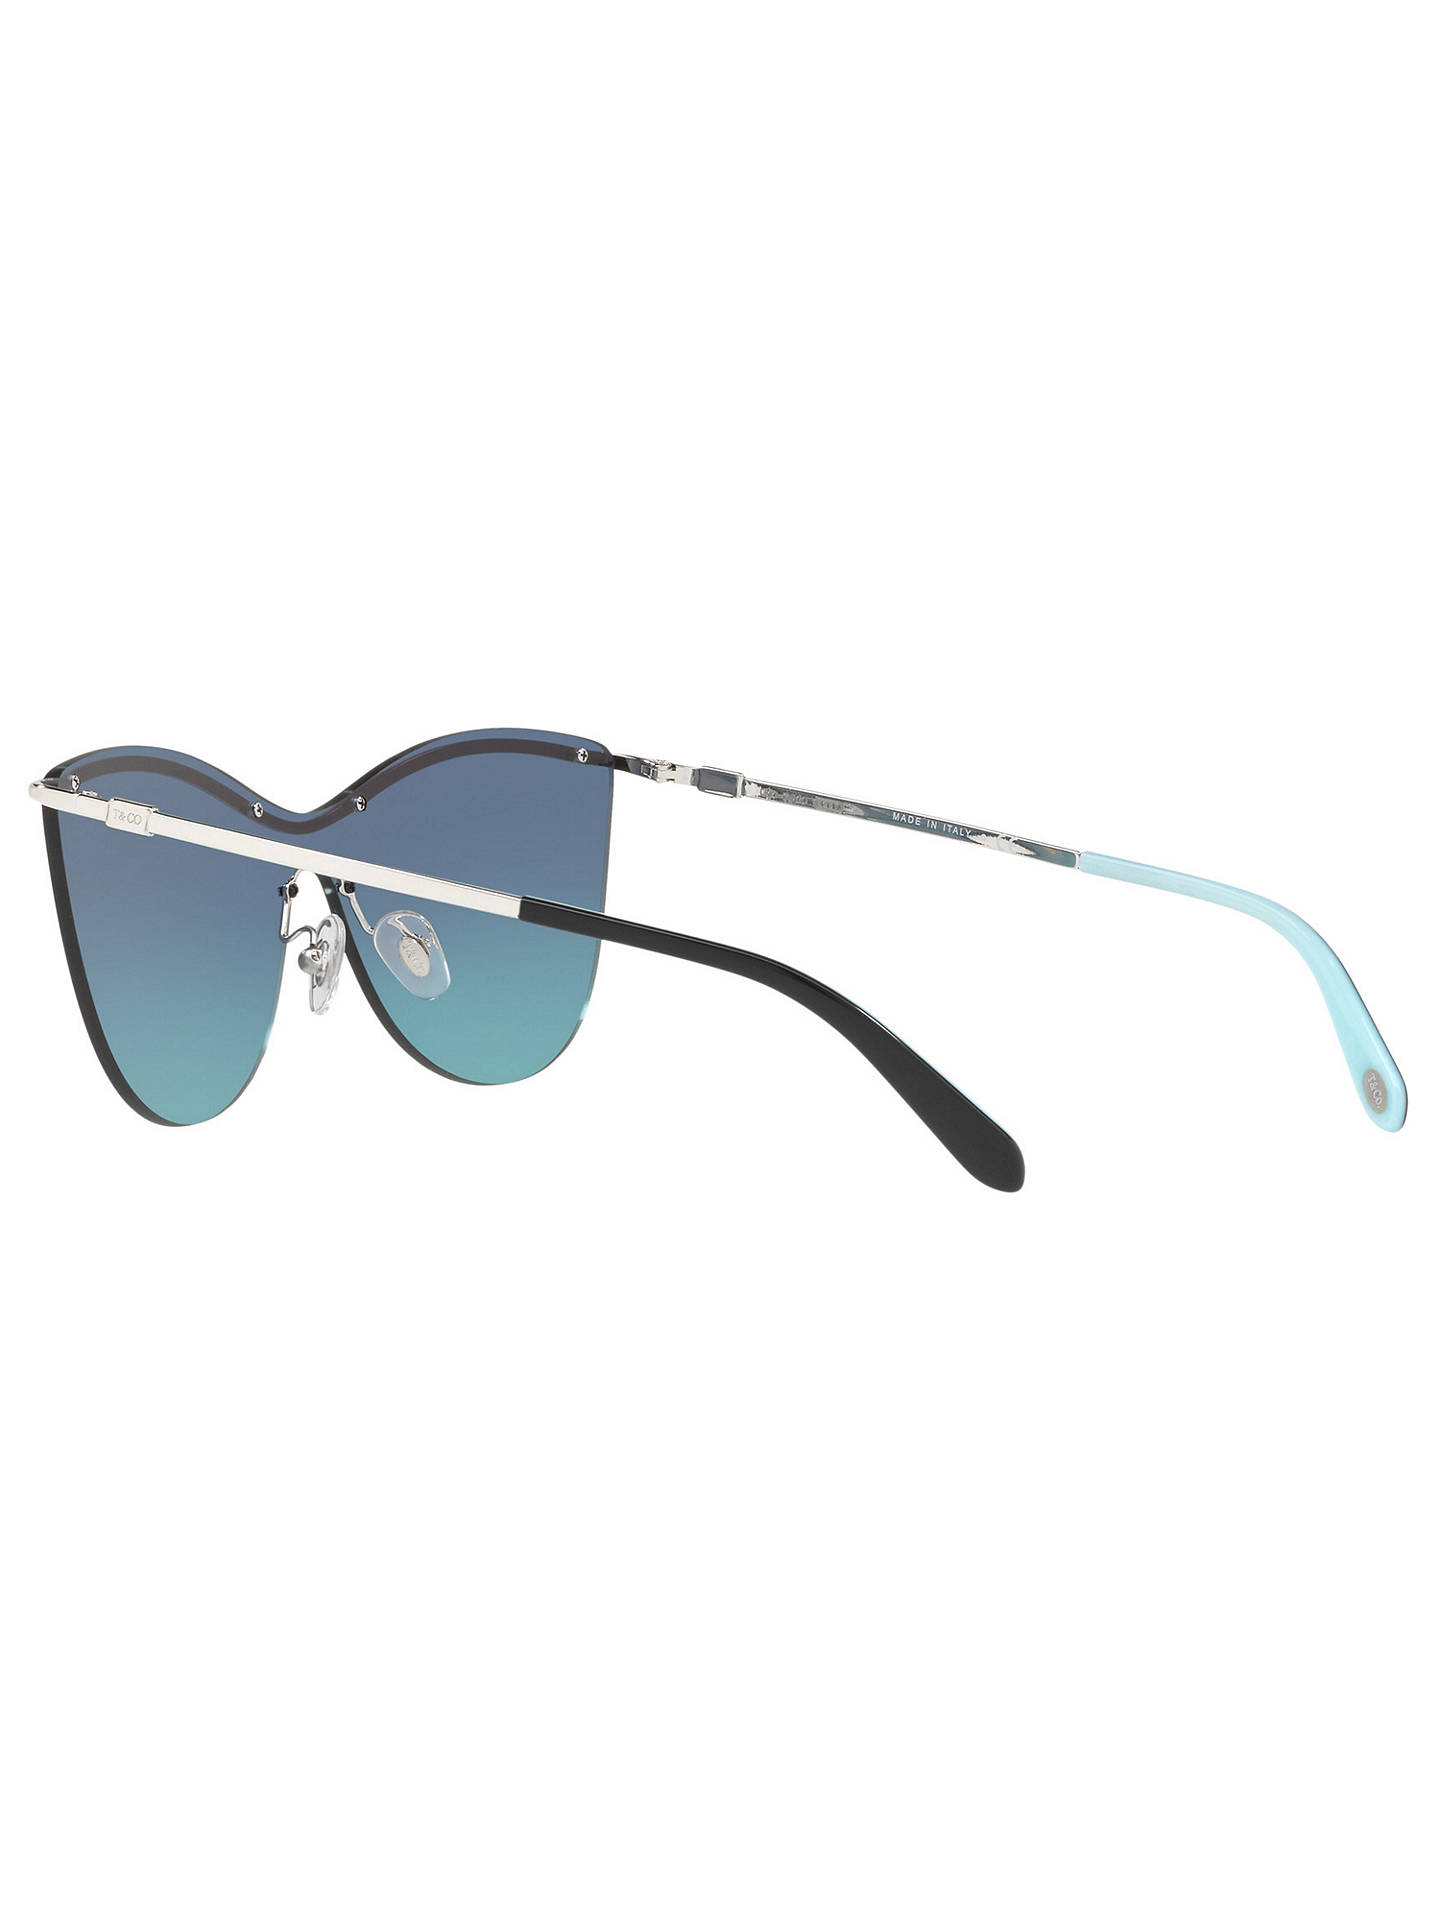 c9d96c156799 ... Buy Tiffany   Co TF3058 Cat s Eye Sunglasses